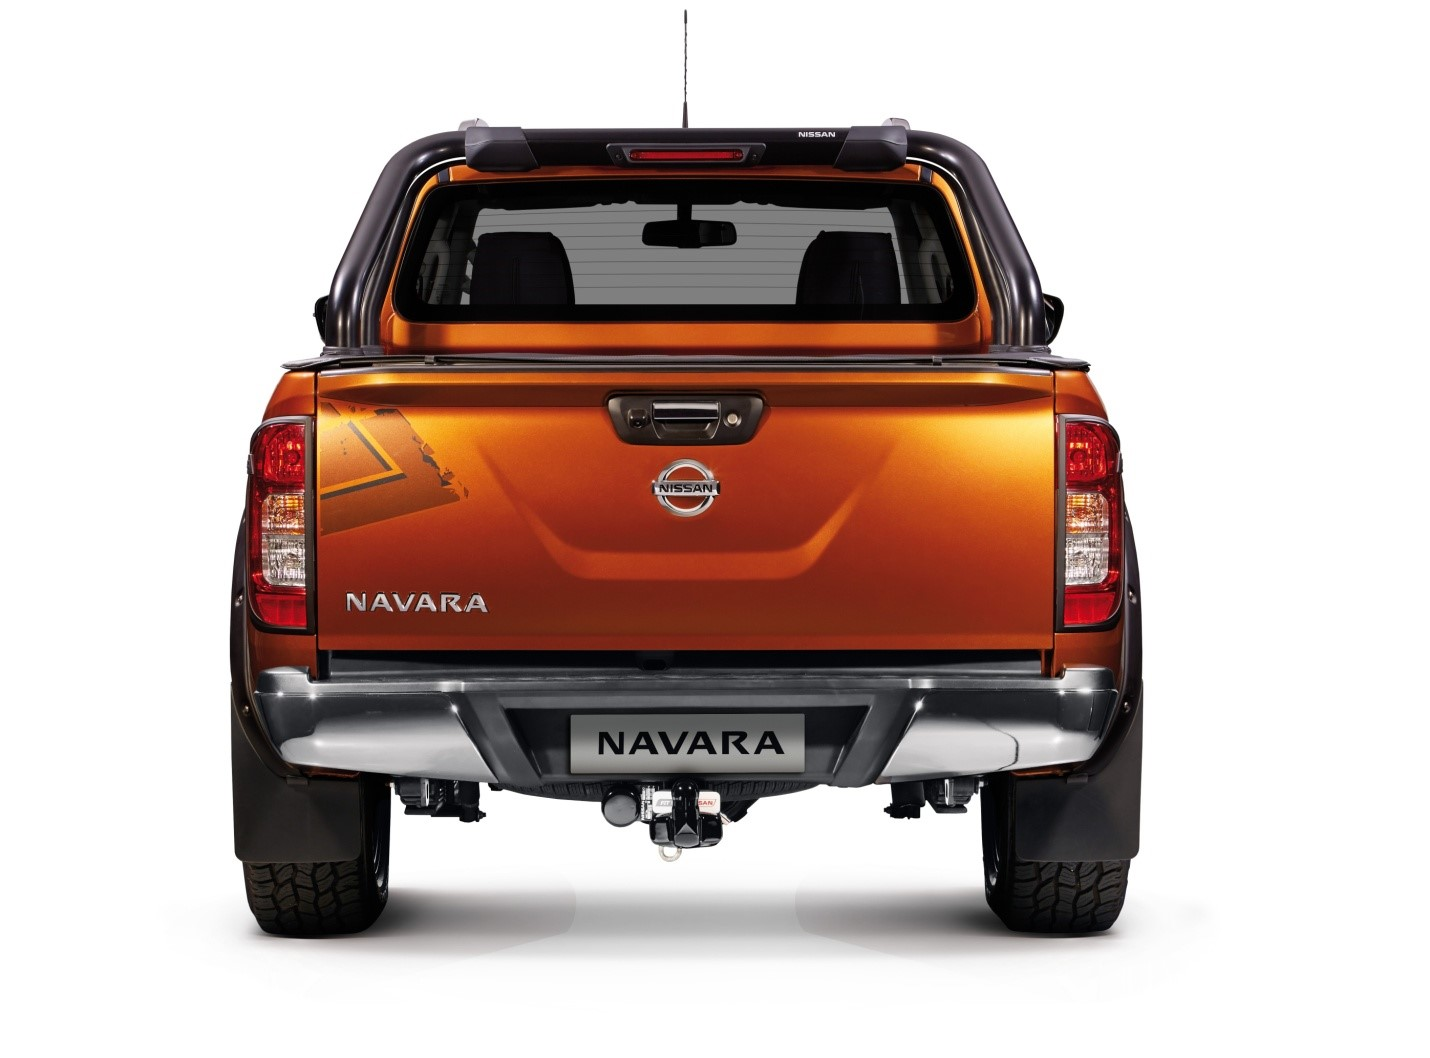 Rough rural roads was also a concern for mamsy madonsela who recently bought a new nissan navara we once drove with a couple who owned a nissan np300